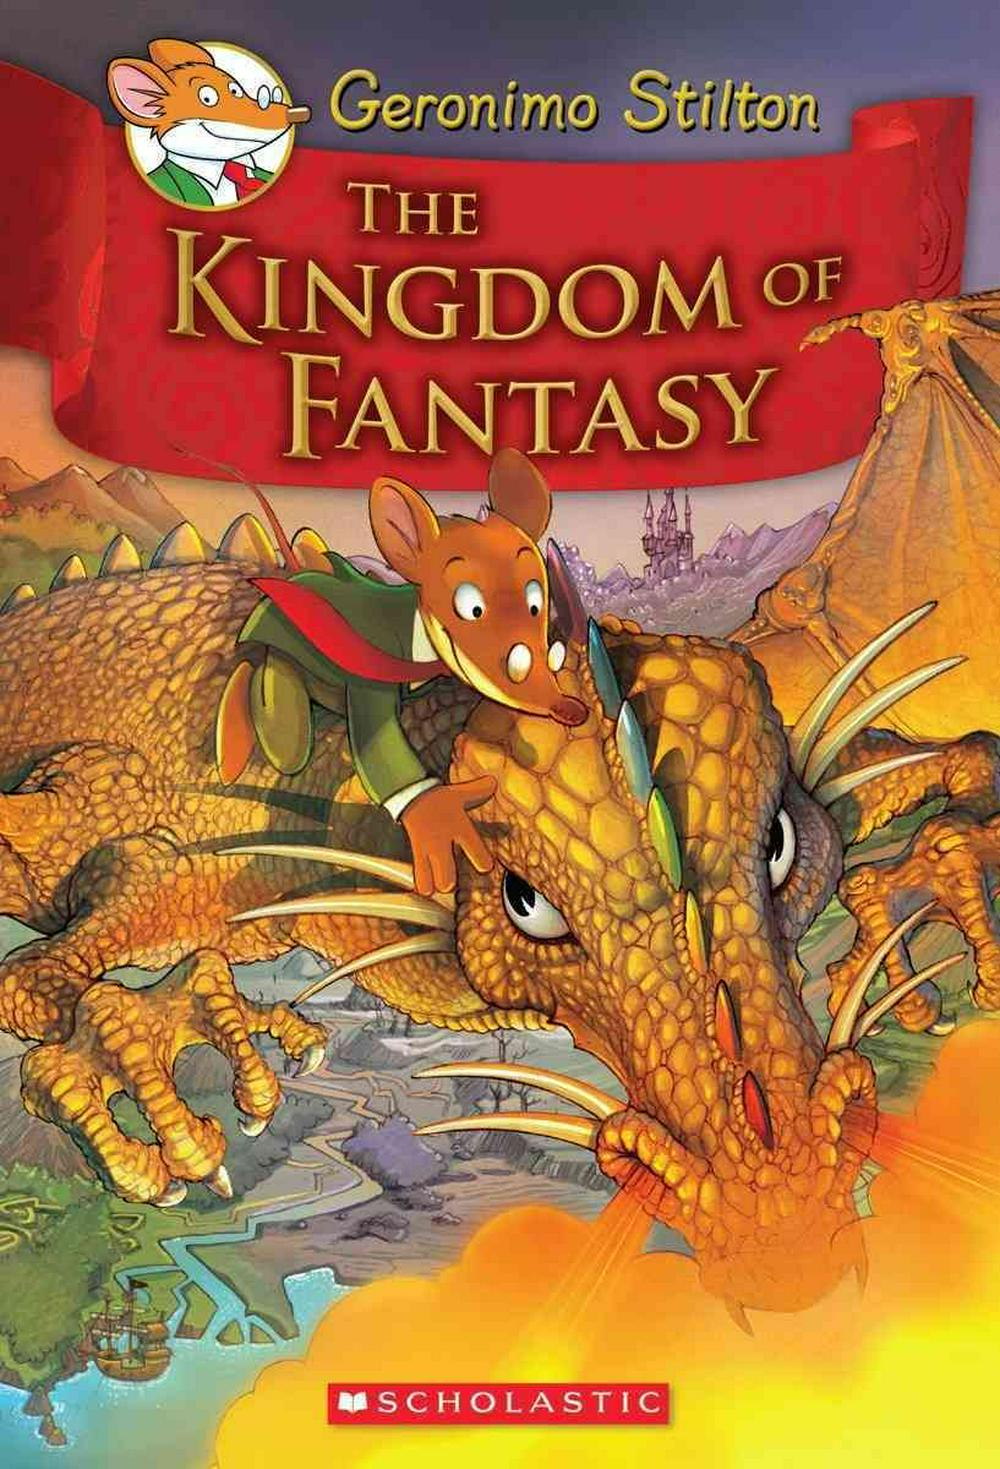 The Kingdom of Fantasy by Geronimo Stilton, ISBN: 9780545980258